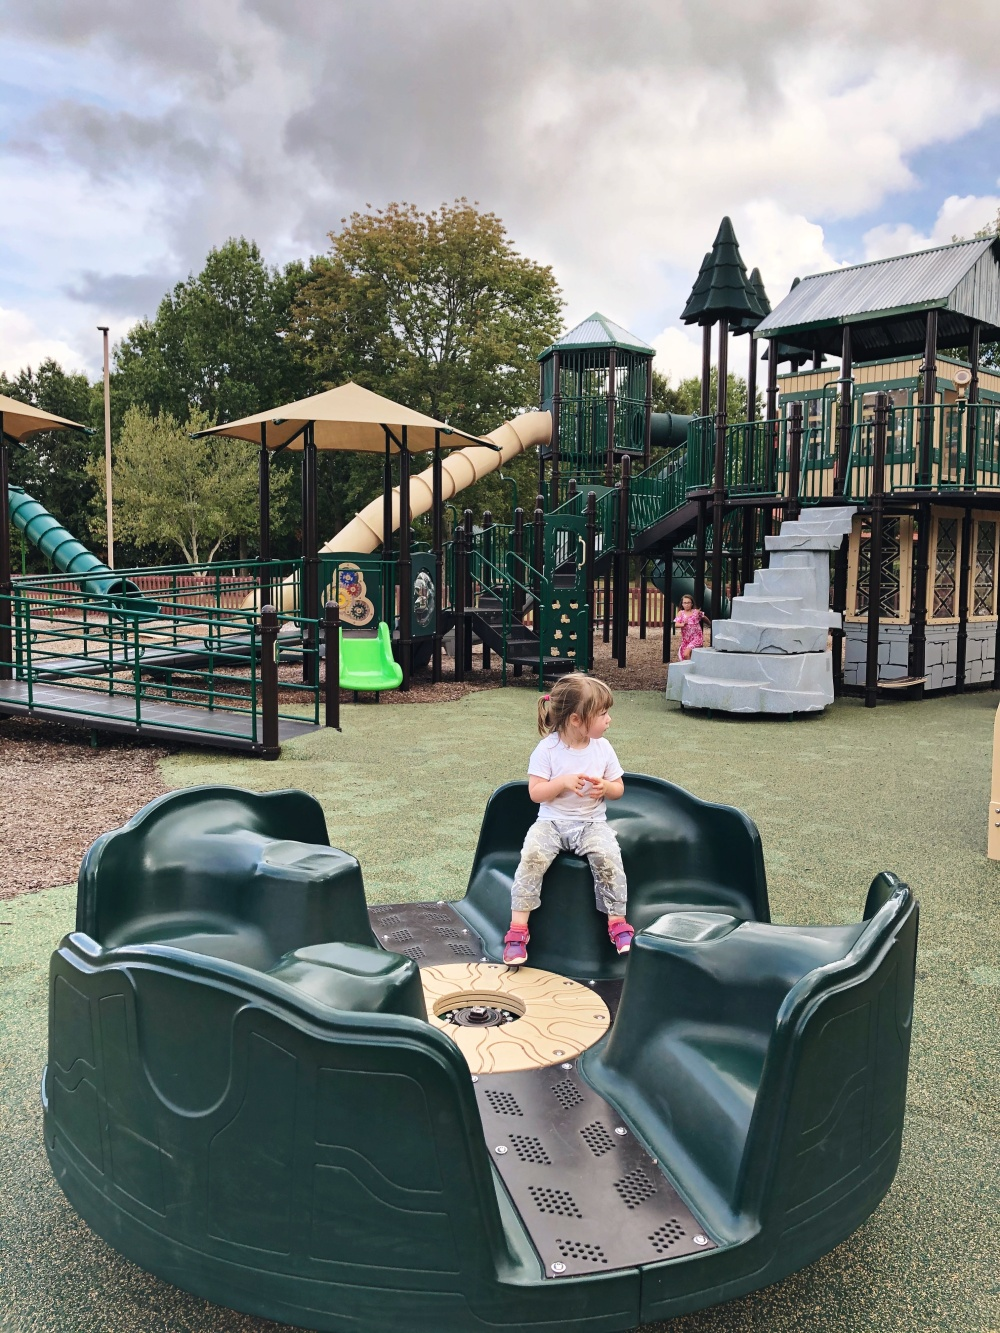 toddler sitting alone on a stationary spinning structure at Don Fox Community Park in Lebanon, TN